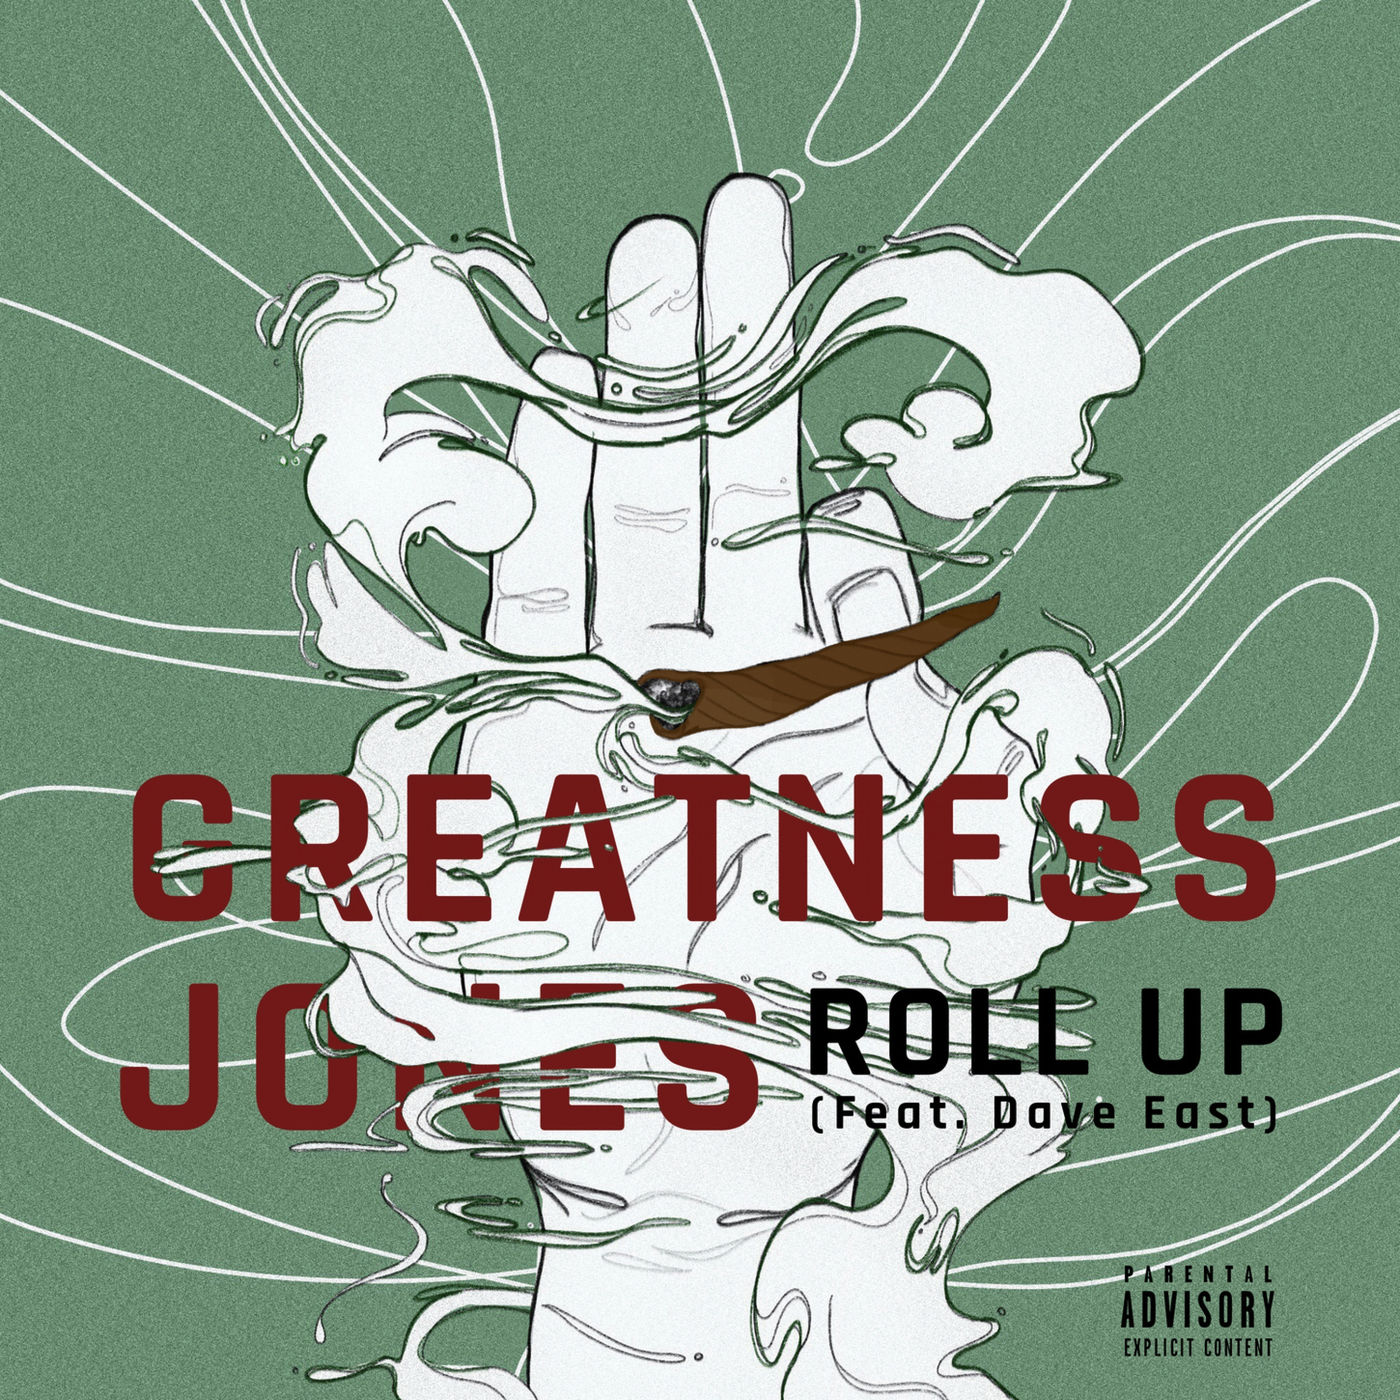 Greatness Jones - Roll Up (feat. Dave East) - Single Cover